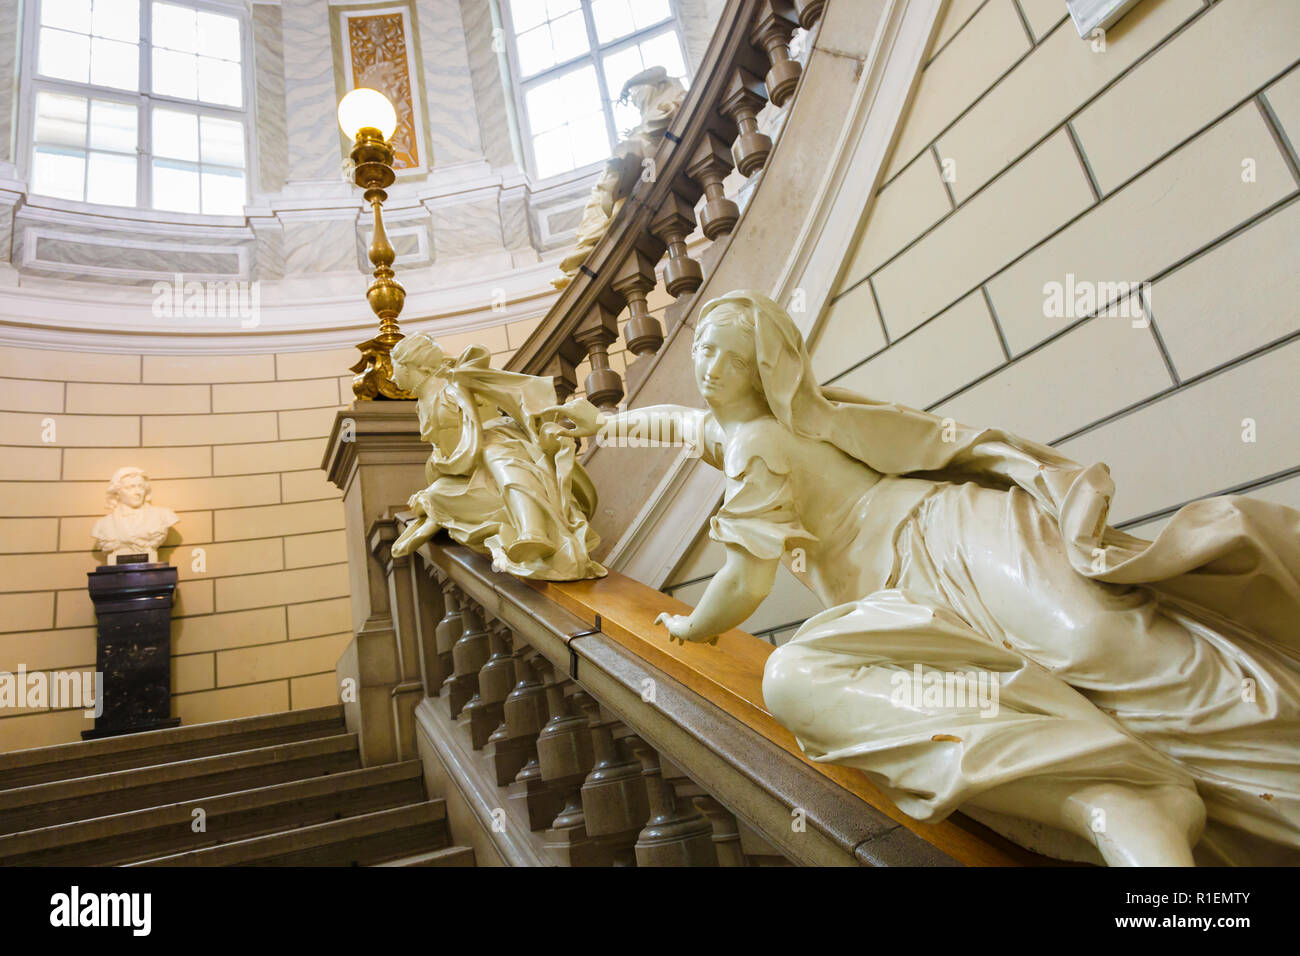 Staircase. National Museum of Slovenia. Ljubljana. Slovenia, Europe - Stock Image